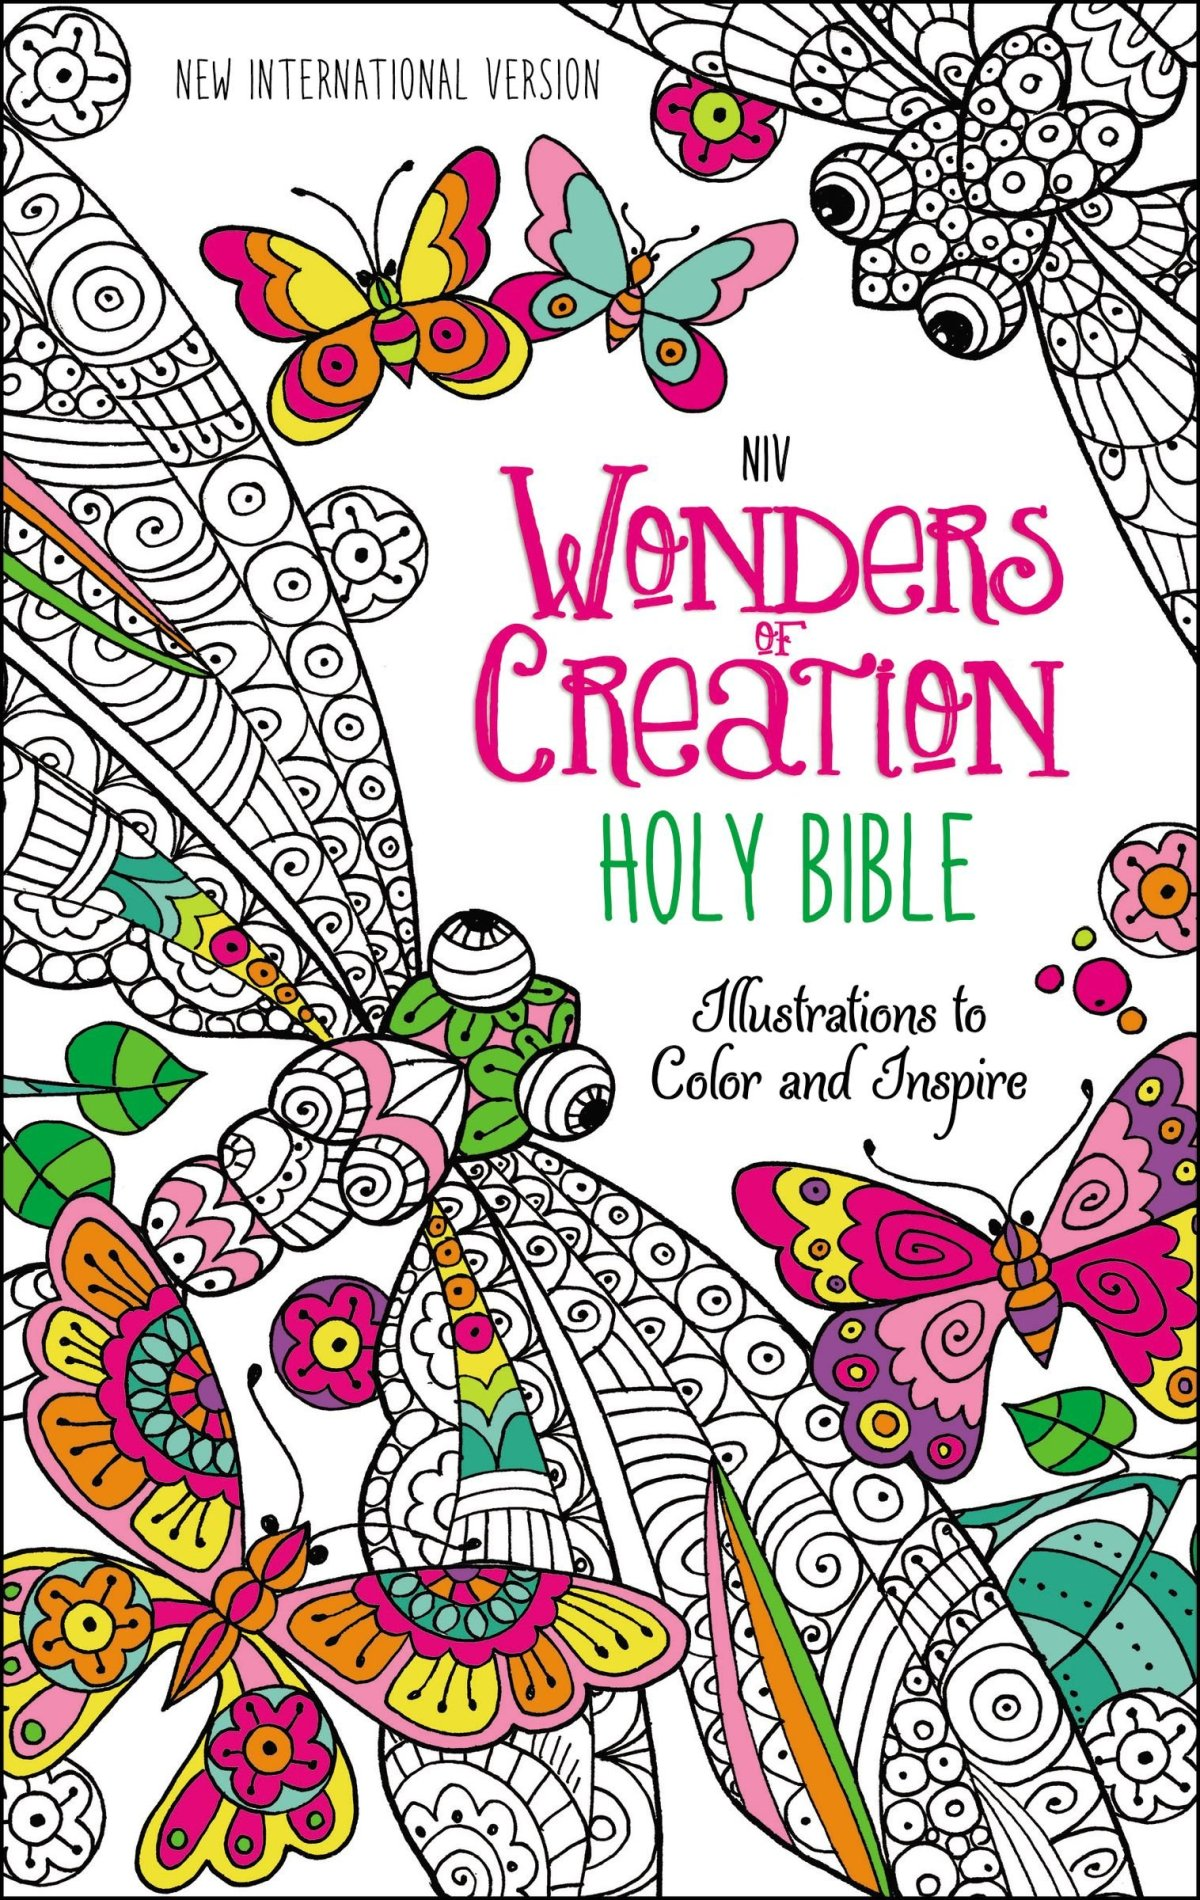 Wonders in Creation Holy Bible